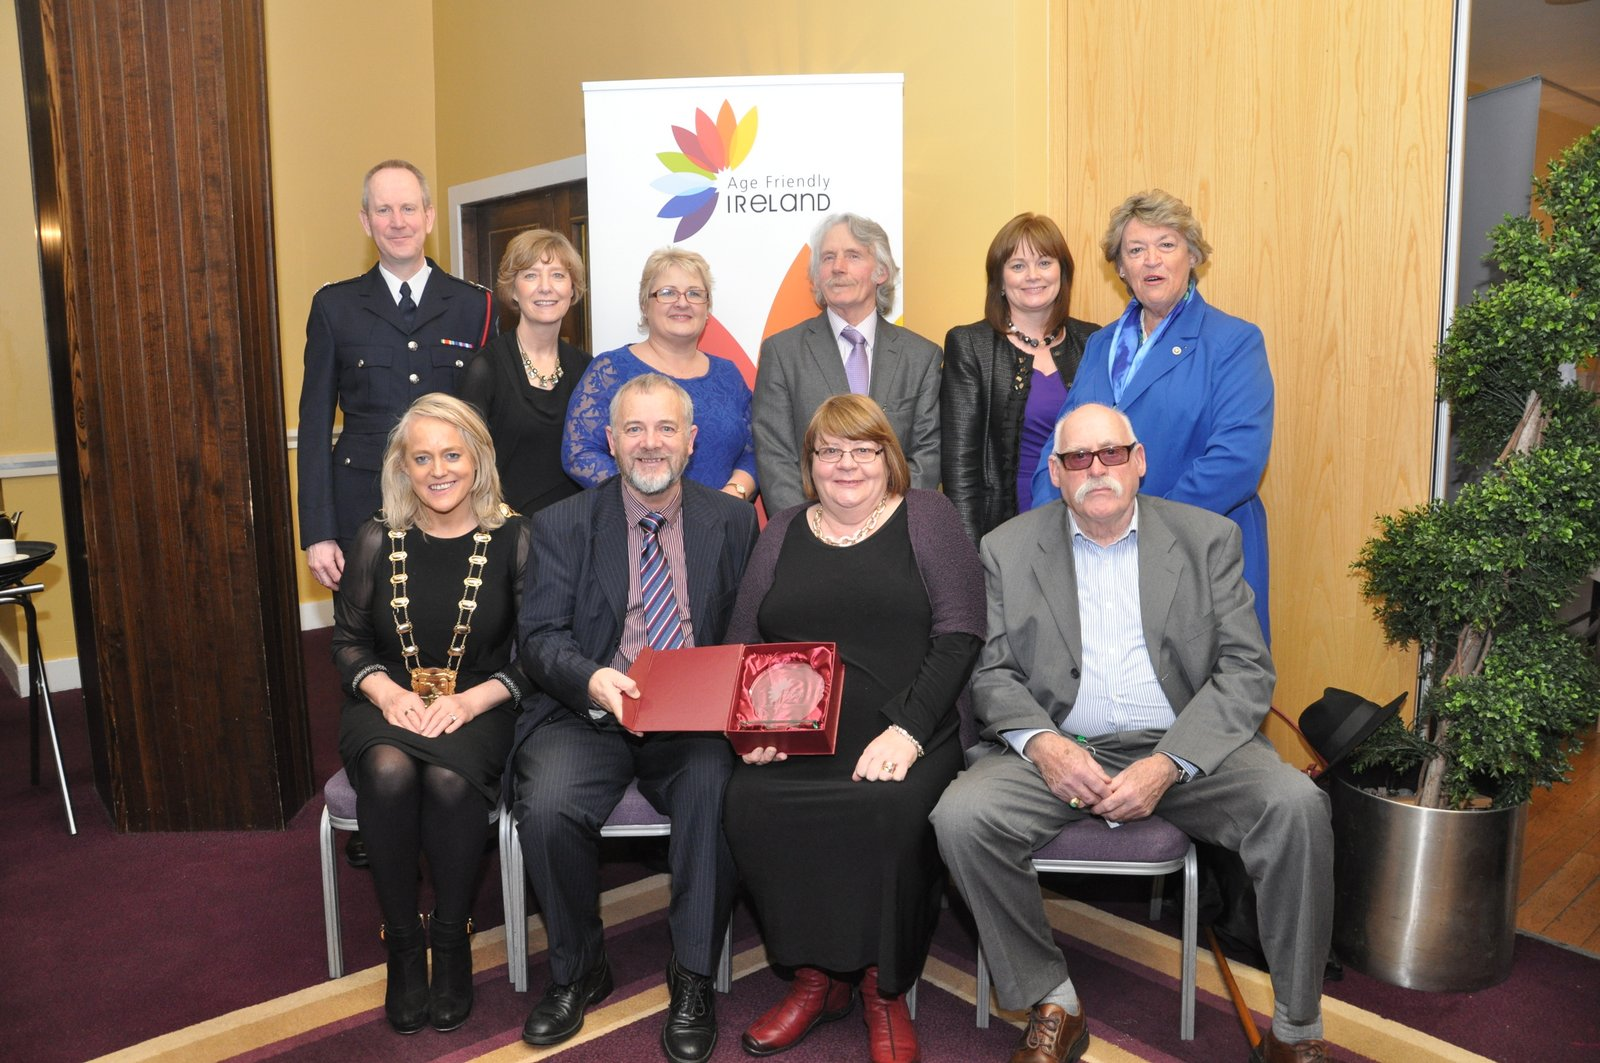 "n this picture: Back row: Brendan McNicholas 3rd Officer Dublin Fire Brigade; Eithne Mallin – FCC; Louise Edmonds – FCC; Brendan Sherlock – Skerries Community Association; AnnMarie Farrelly – FCC; Nora Owen – Chair Fingal Age Friendly Alliance; Front row: Cllr Mags Murray – Mayor of Fingal; Martin Russell – Skerries Community Association; Mary Conway Skerries Community Association; Bob McAlpine – Vice Chair Fingal Senior Citizen's Forum Photo: Leo ""George"" Devitt"